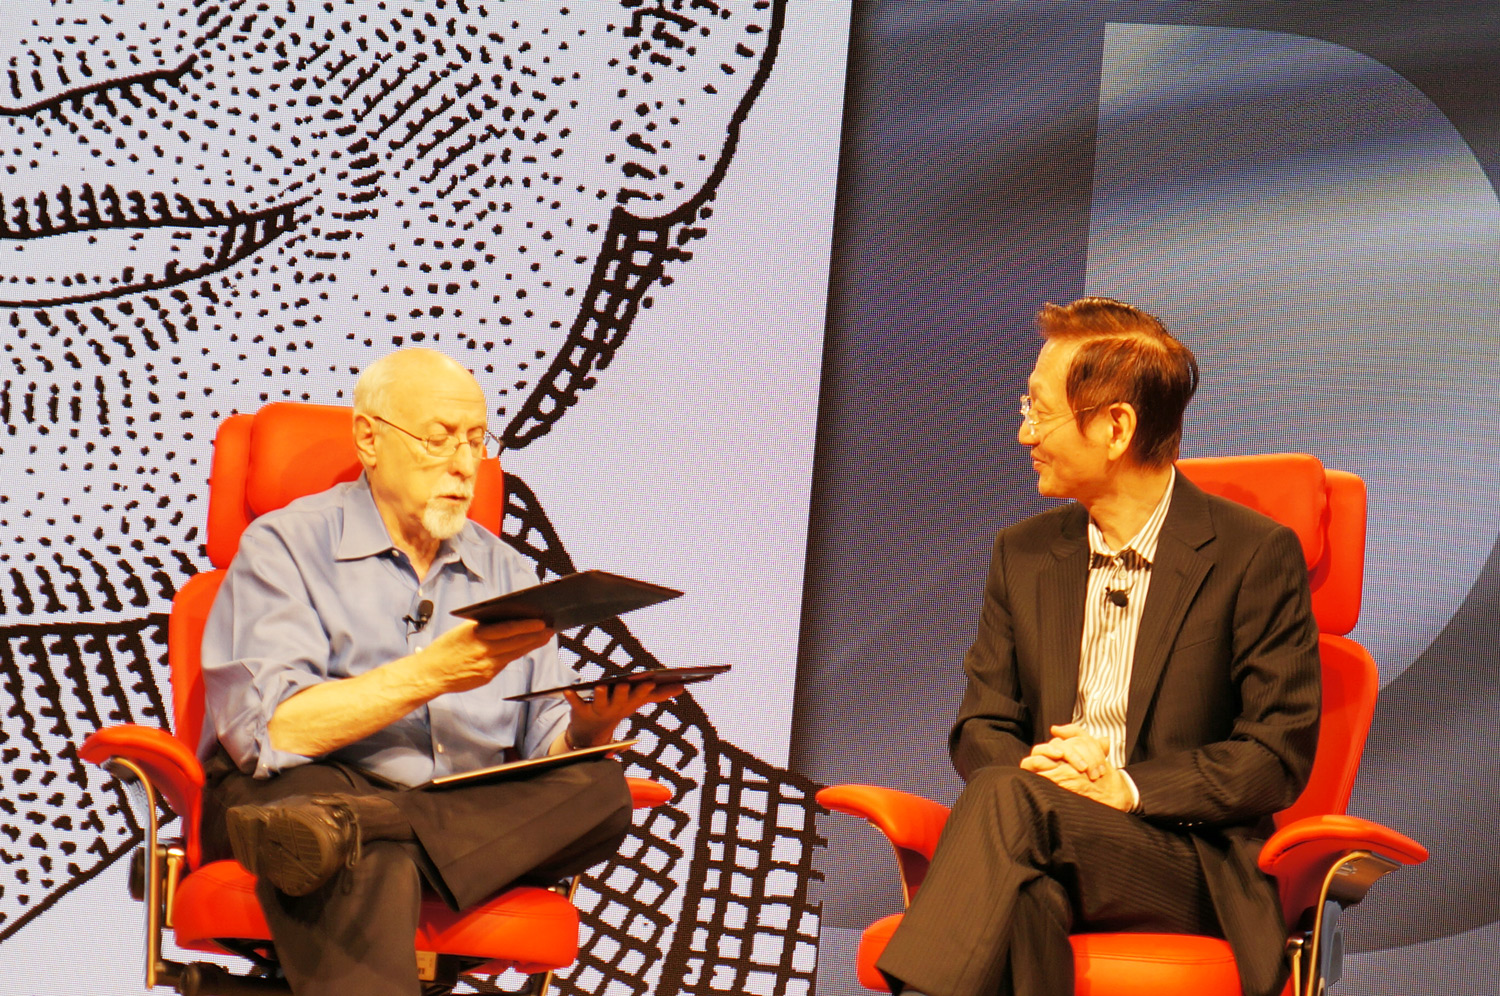 ASUS-AsiaD-Event-Walt-Mossberg-with-Eee-Pad-Transformer-Prime-undocked